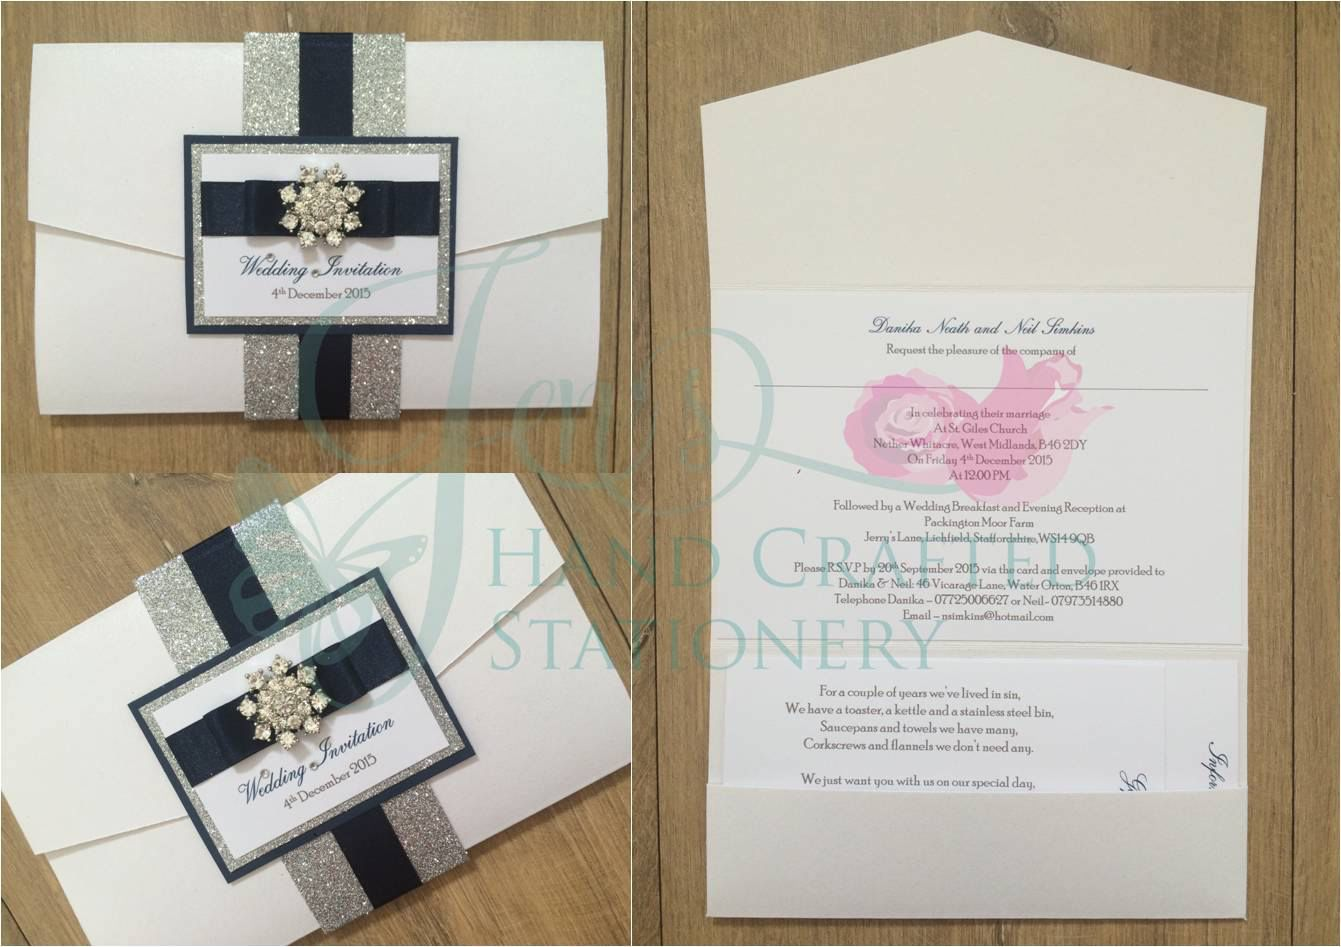 Silver Glitter Belly Band Pocket Fold Wedding Invitation With Navy Ribbon And Diamante Snow Stationery Craft Pocket Fold Wedding Invitations Wedding Stationery